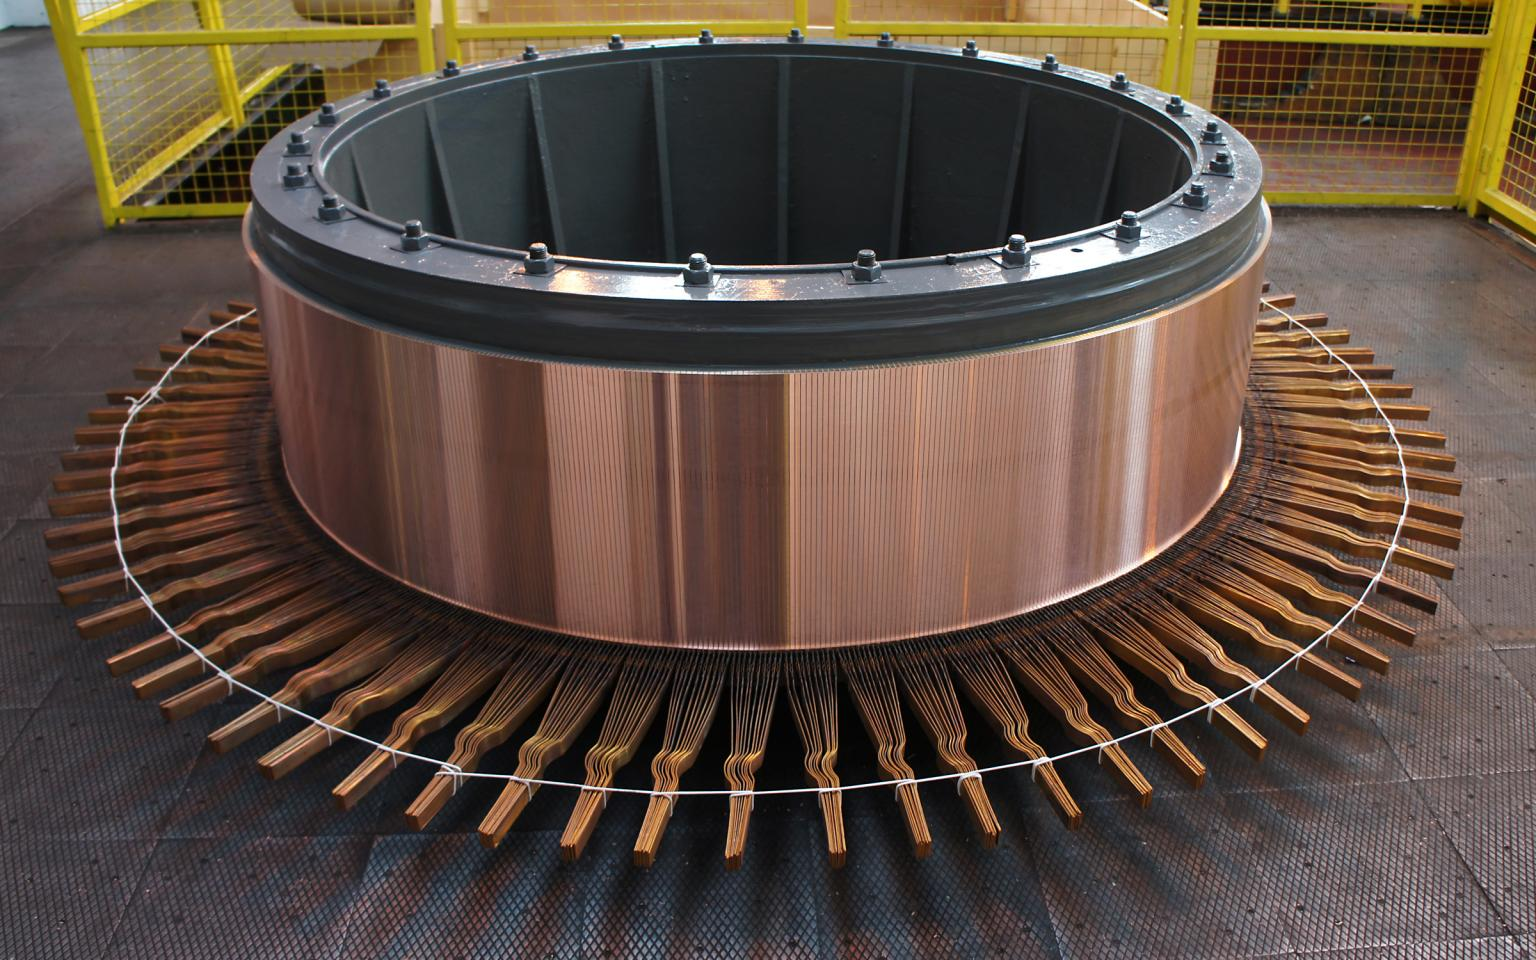 The in-house commutator production facility at Sulzer's Birmingham Service Centre is able to refurbish almost any commutator or slip ring assembly